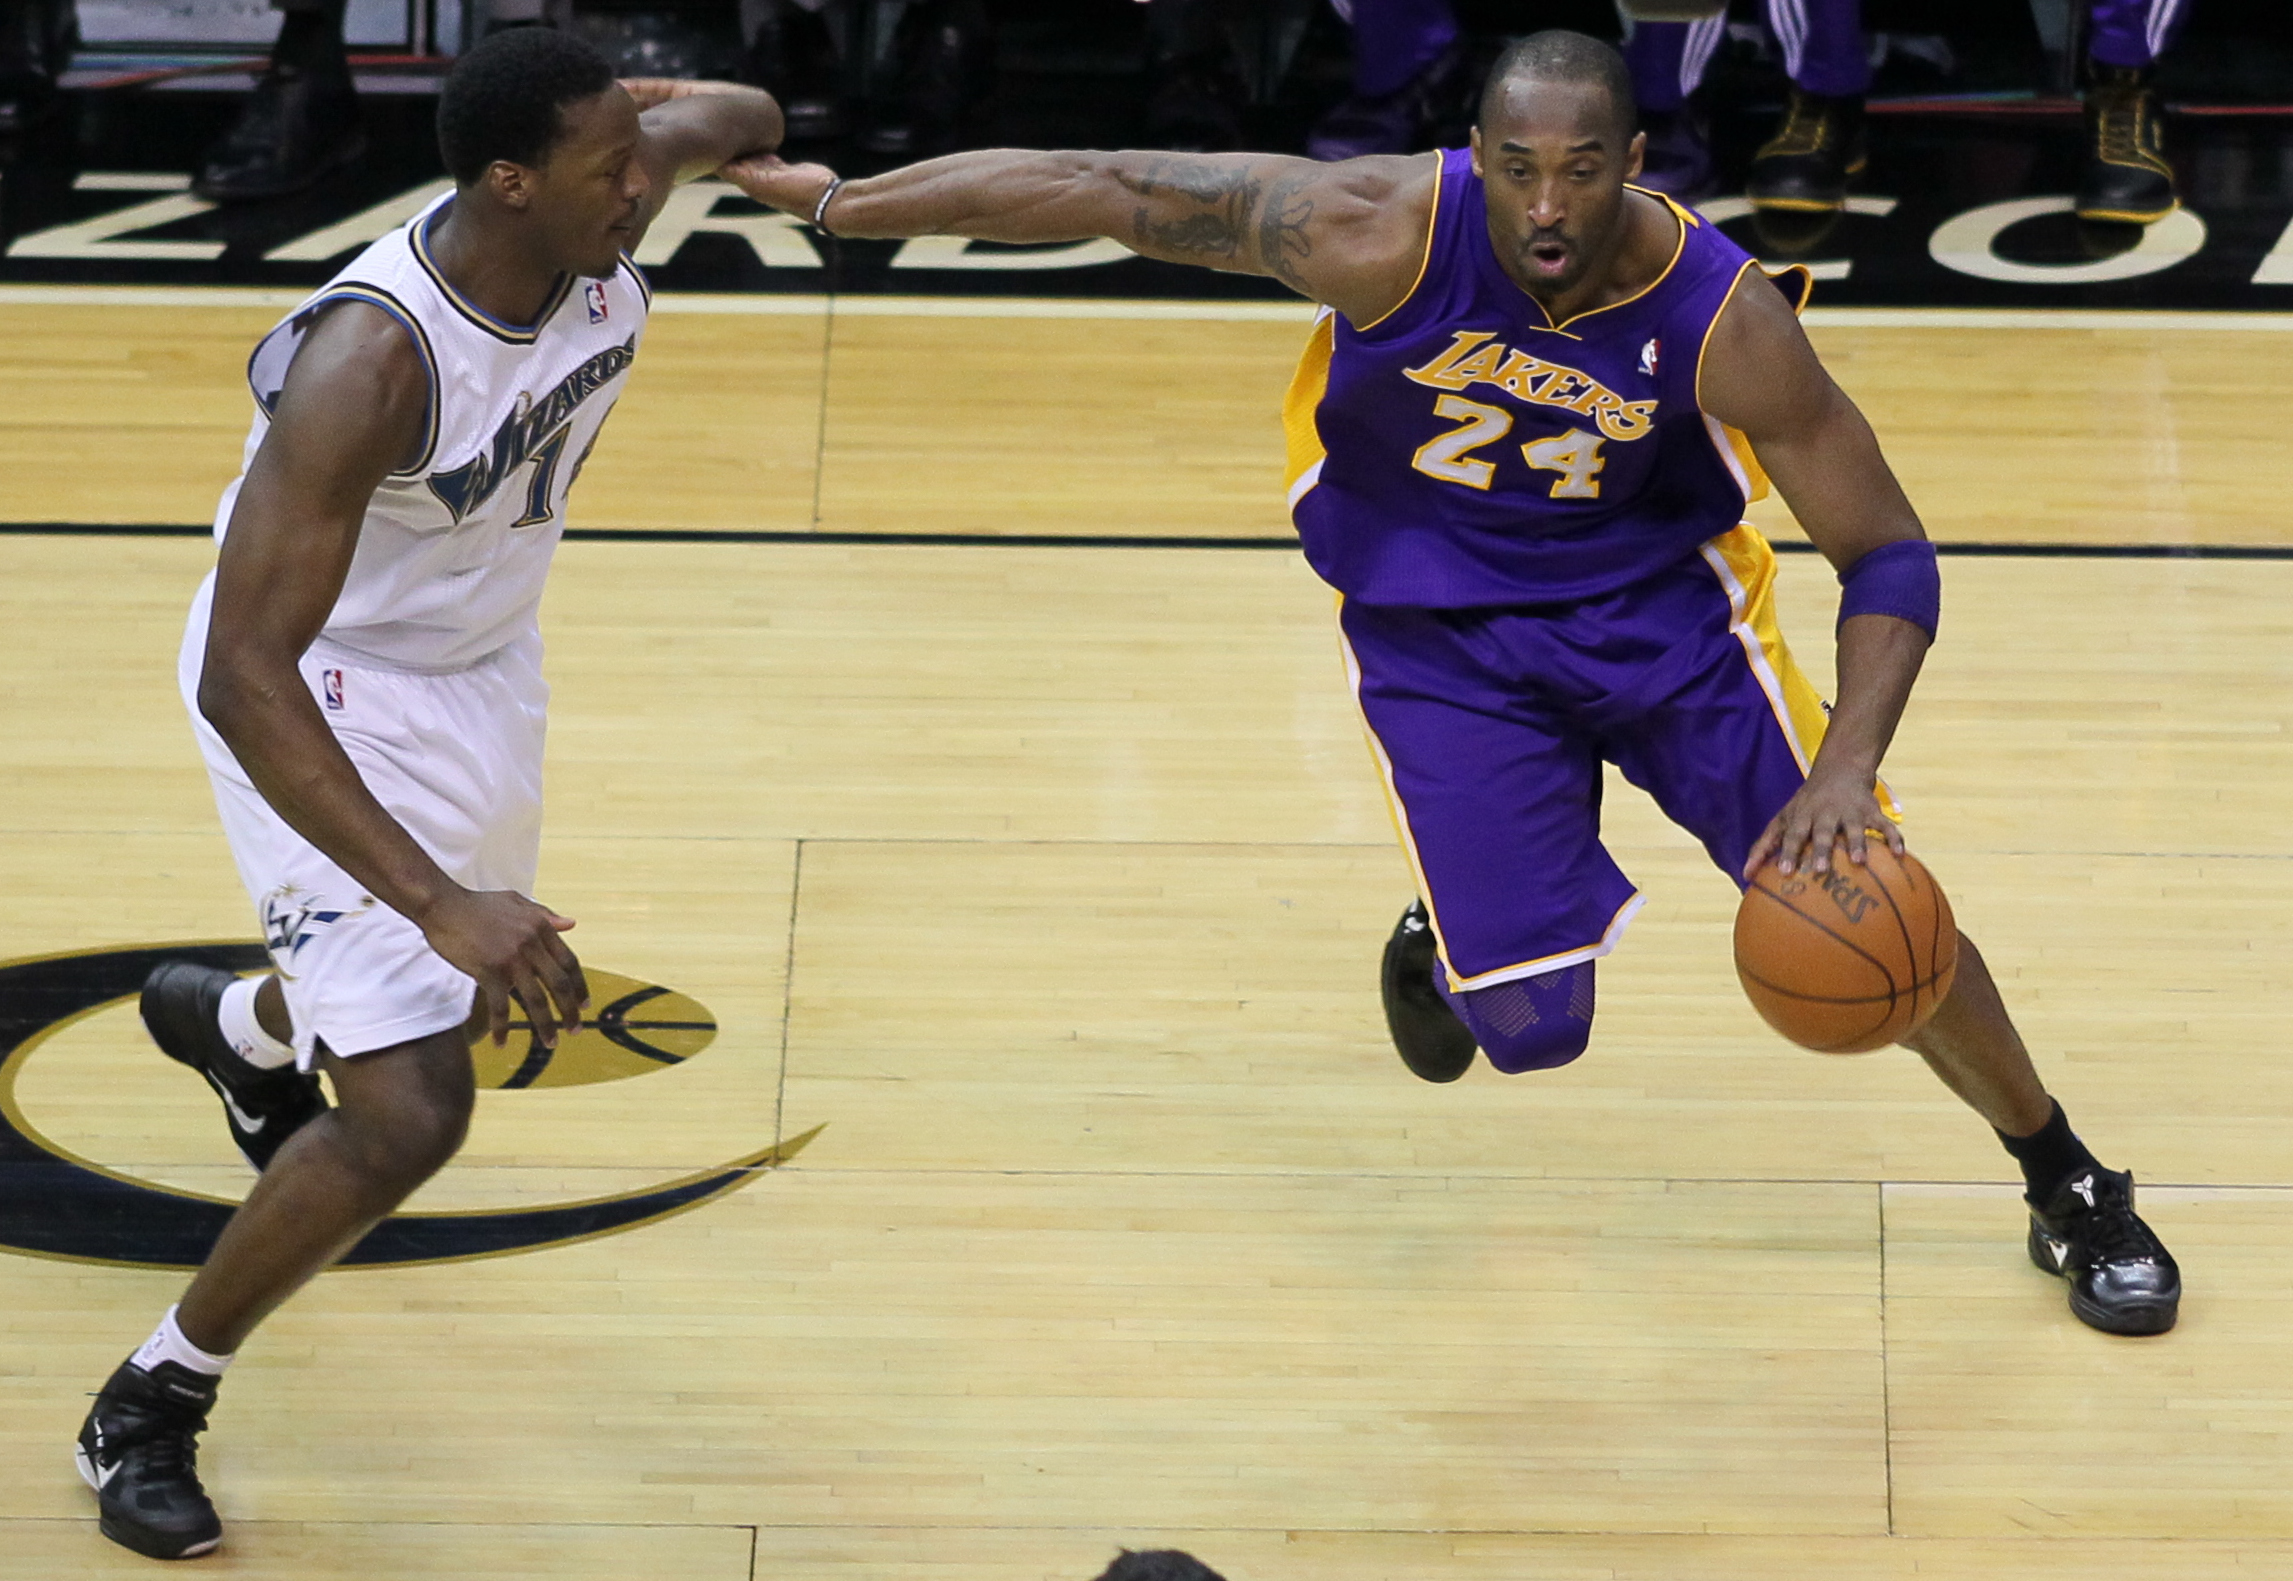 Kobe vs the Wizards in 2010. Photo by Keith Allison, via Flickr creative commons.